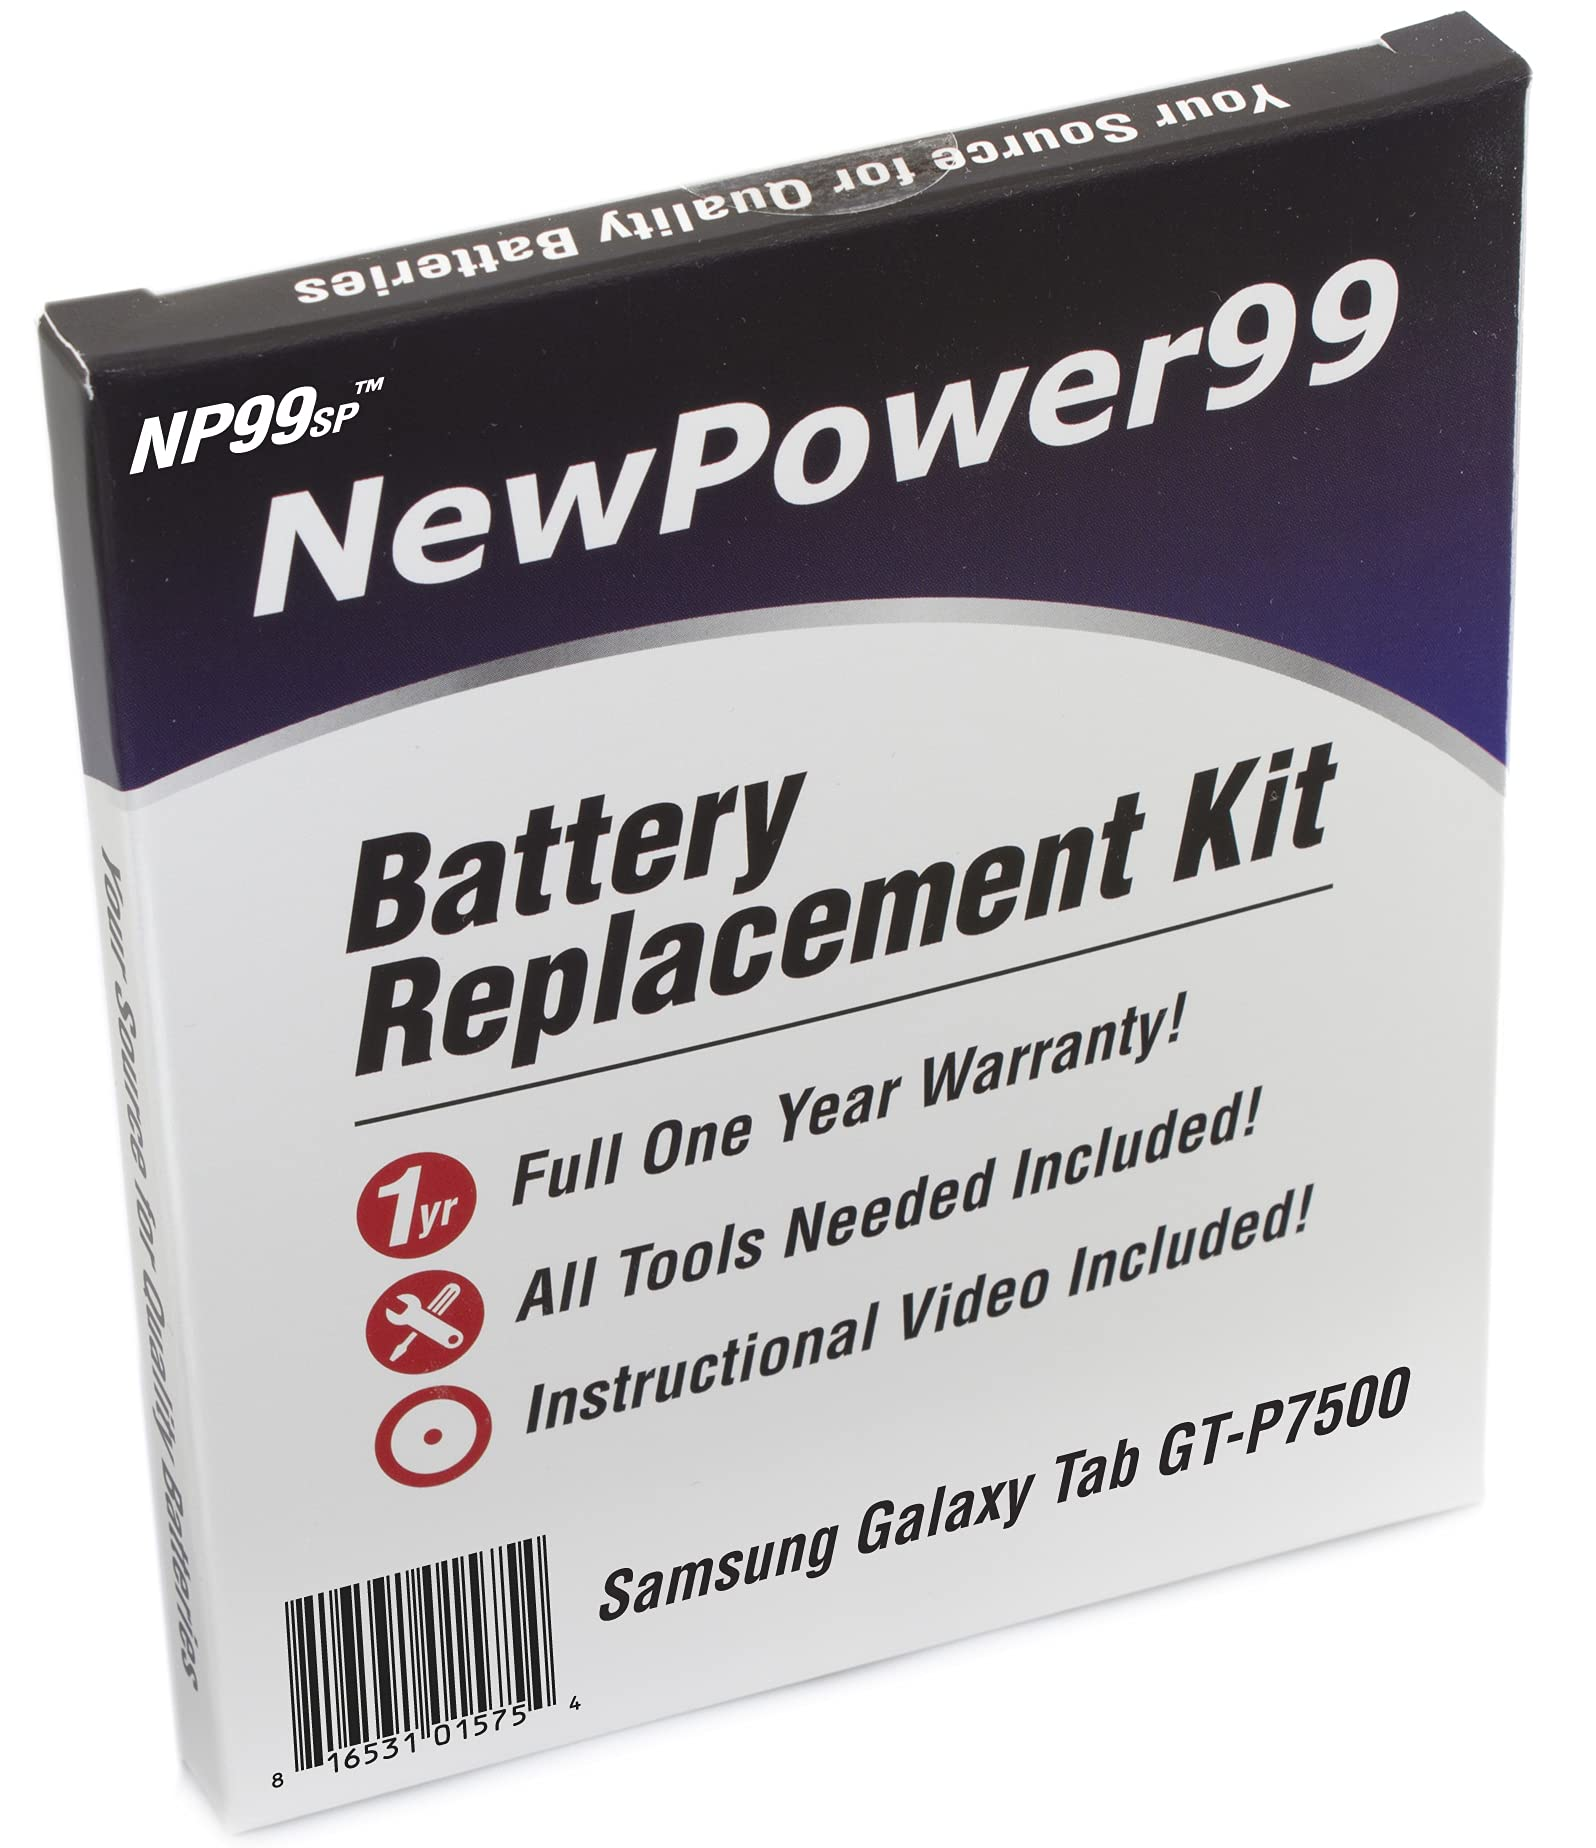 NewPower99 Battery Replacement Kit with Battery, Instructions and Tools for Samsung GALAXY Tab 10.1 GT-P7500